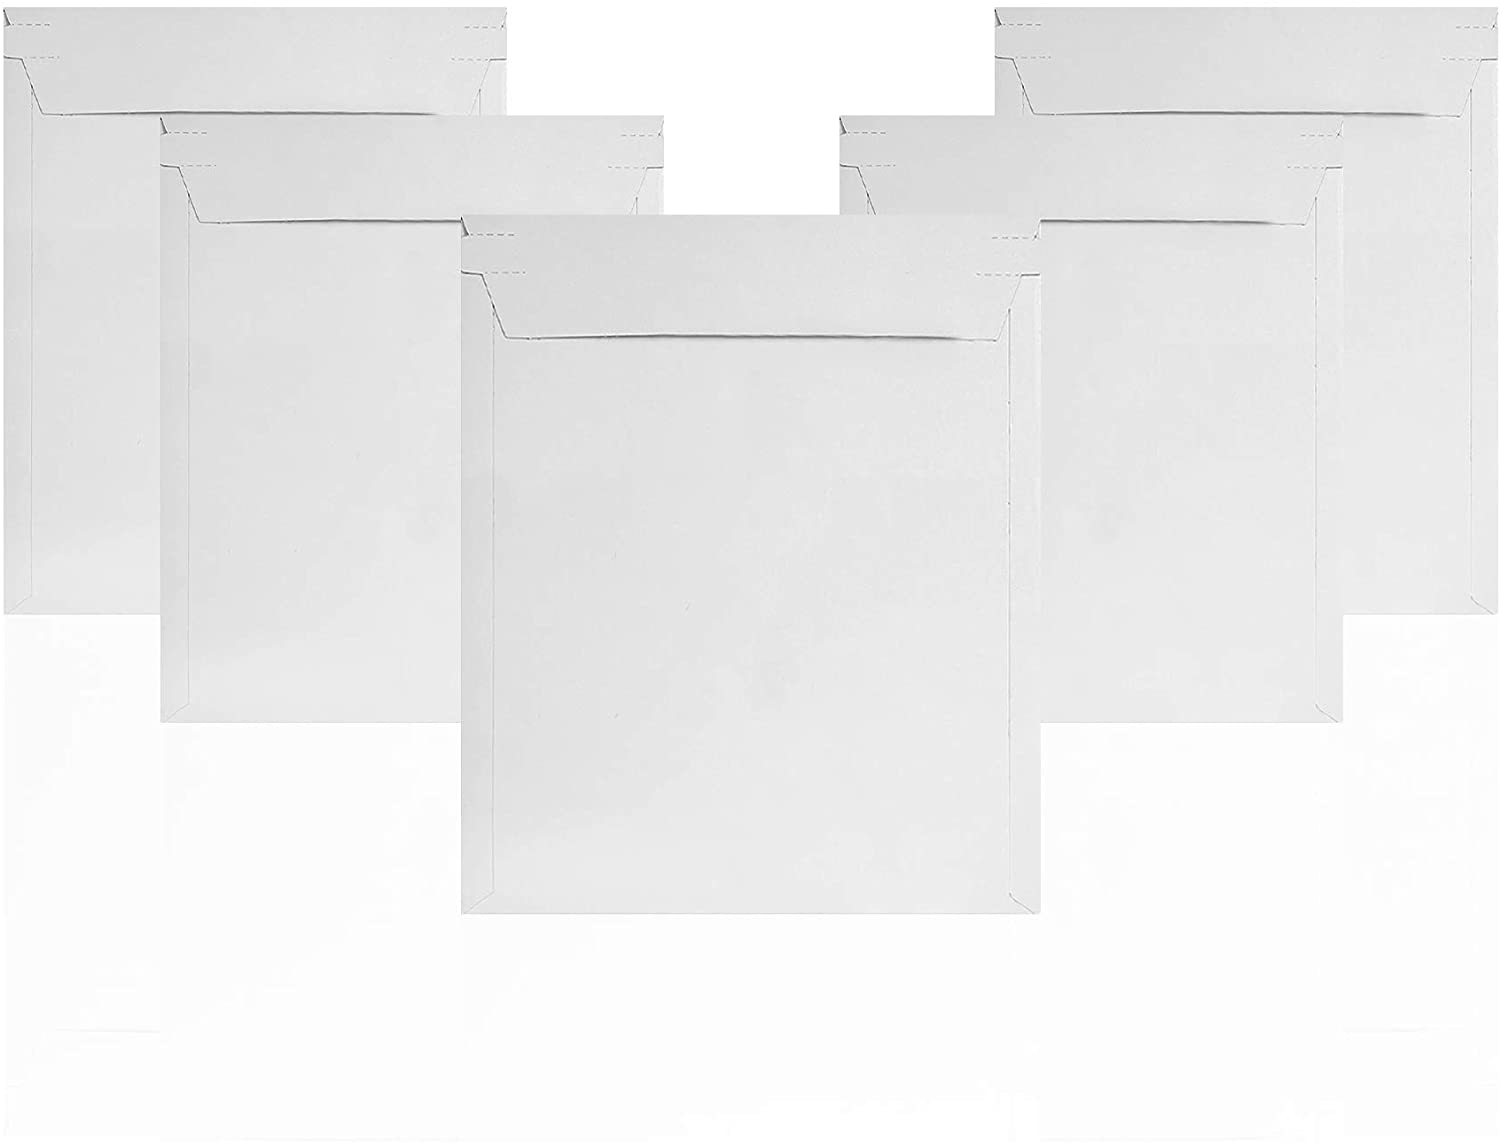 Rigid Mailers 12.75 x 15 Paperboard mailers 12 3/4 x 15. Pack of 10 white photo mailers. Stay Flat mailers. No bend, Self sealing. Document chipboard envelopes. Mailing, shipping.